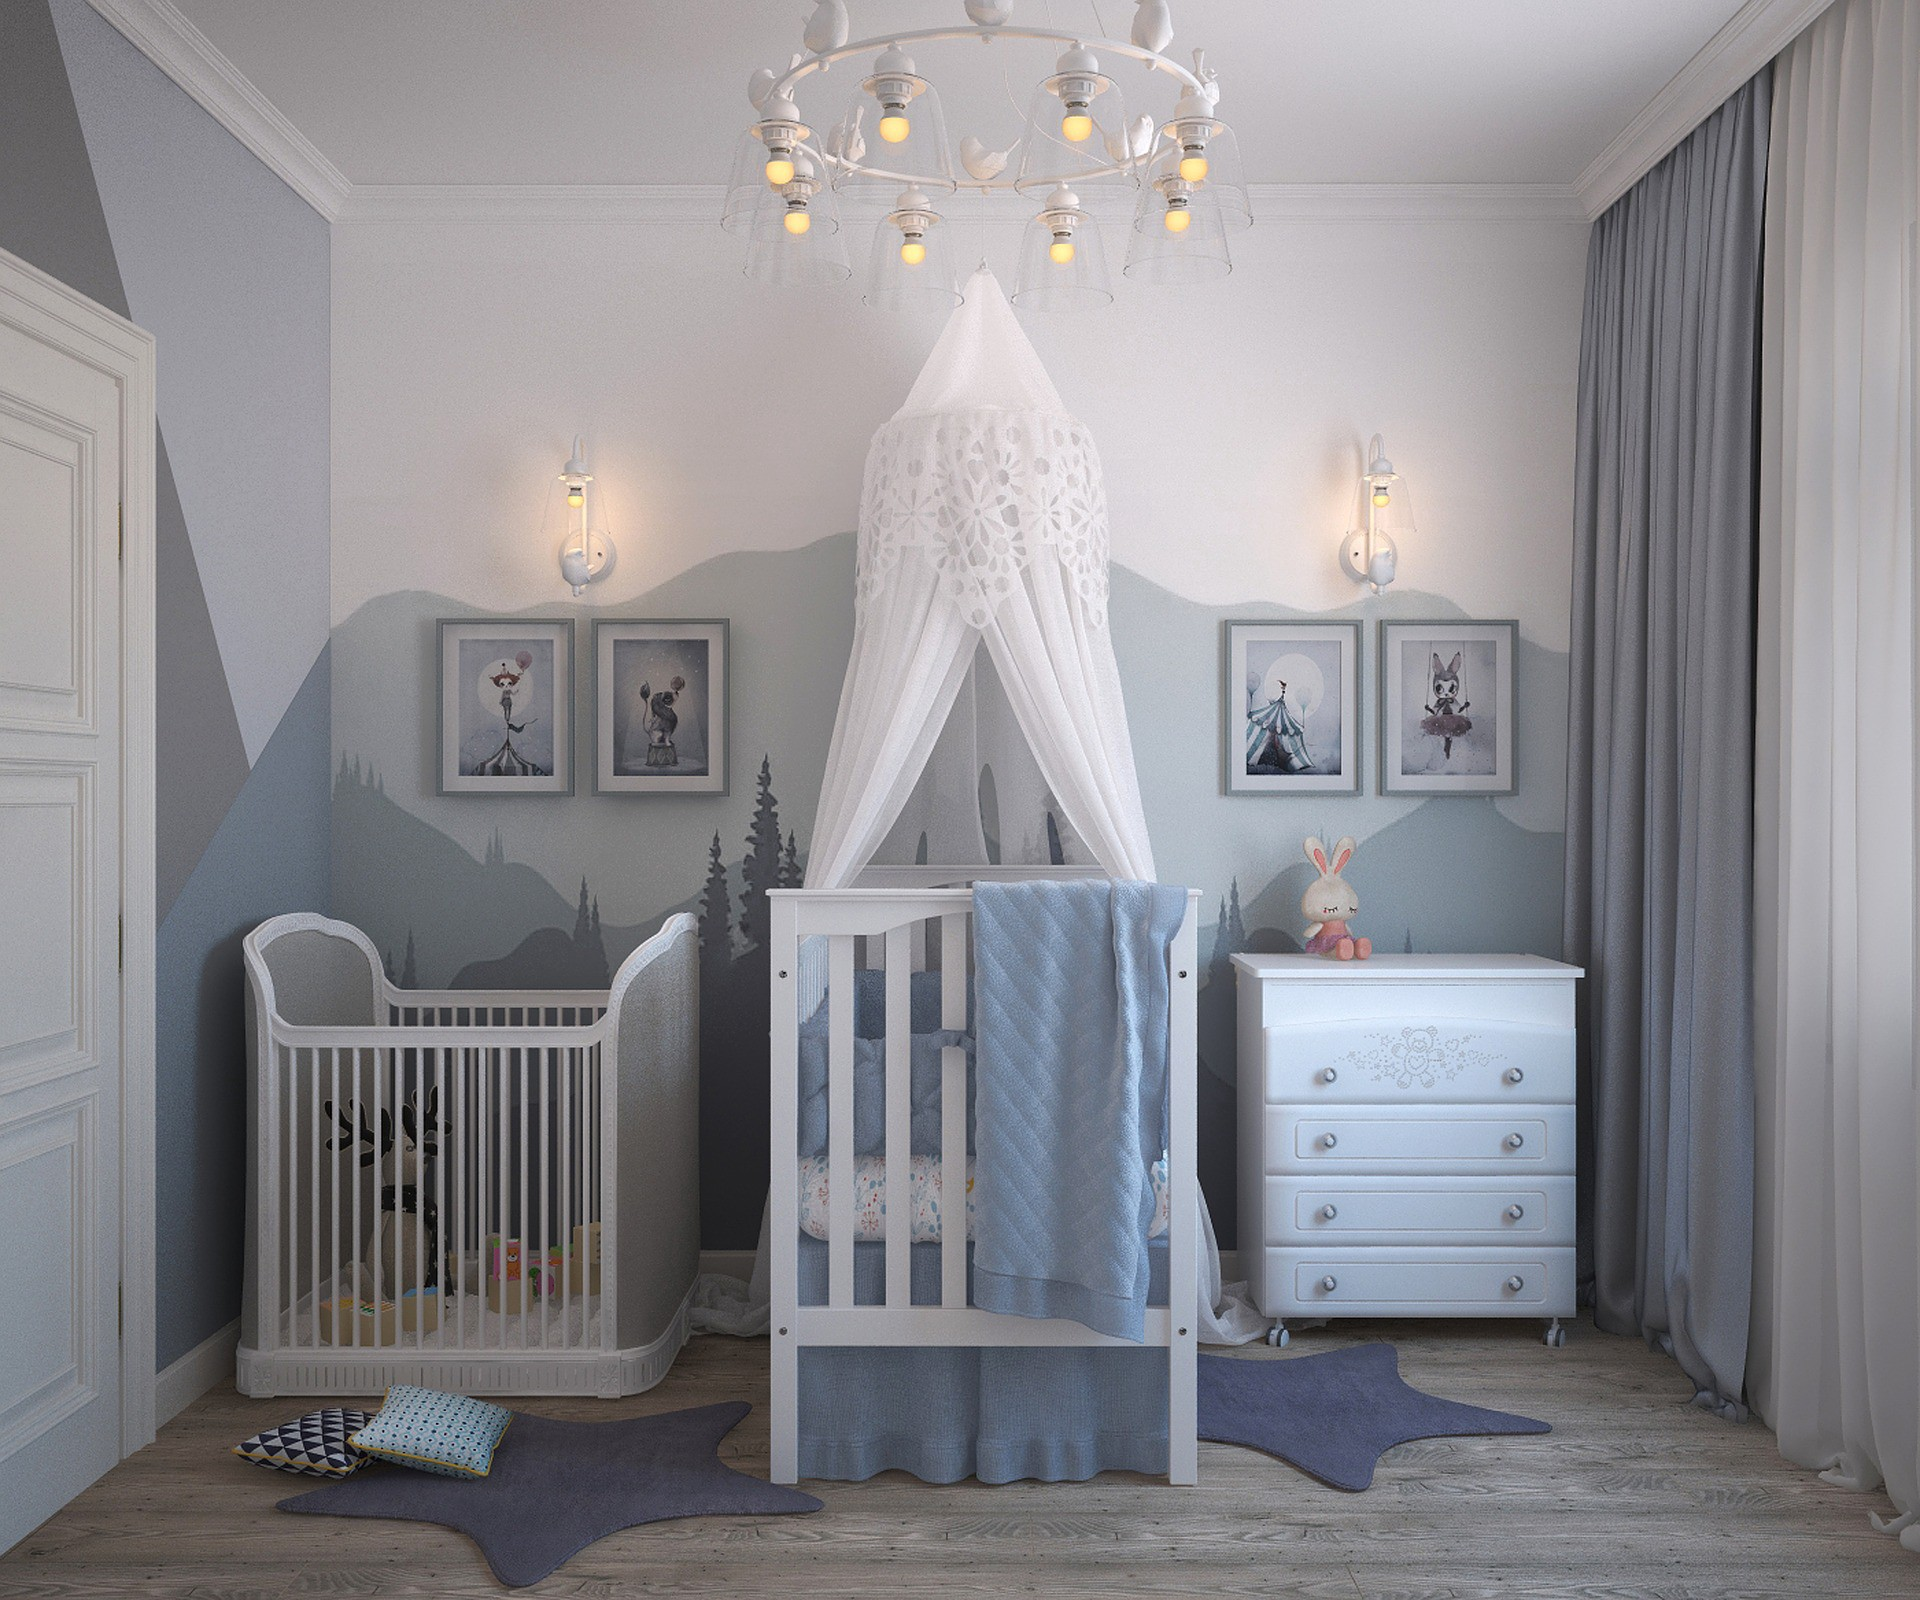 Why Your Baby Room May Not Be Safe — A Few Tips For New Parents | By Naran | Naran | Medium